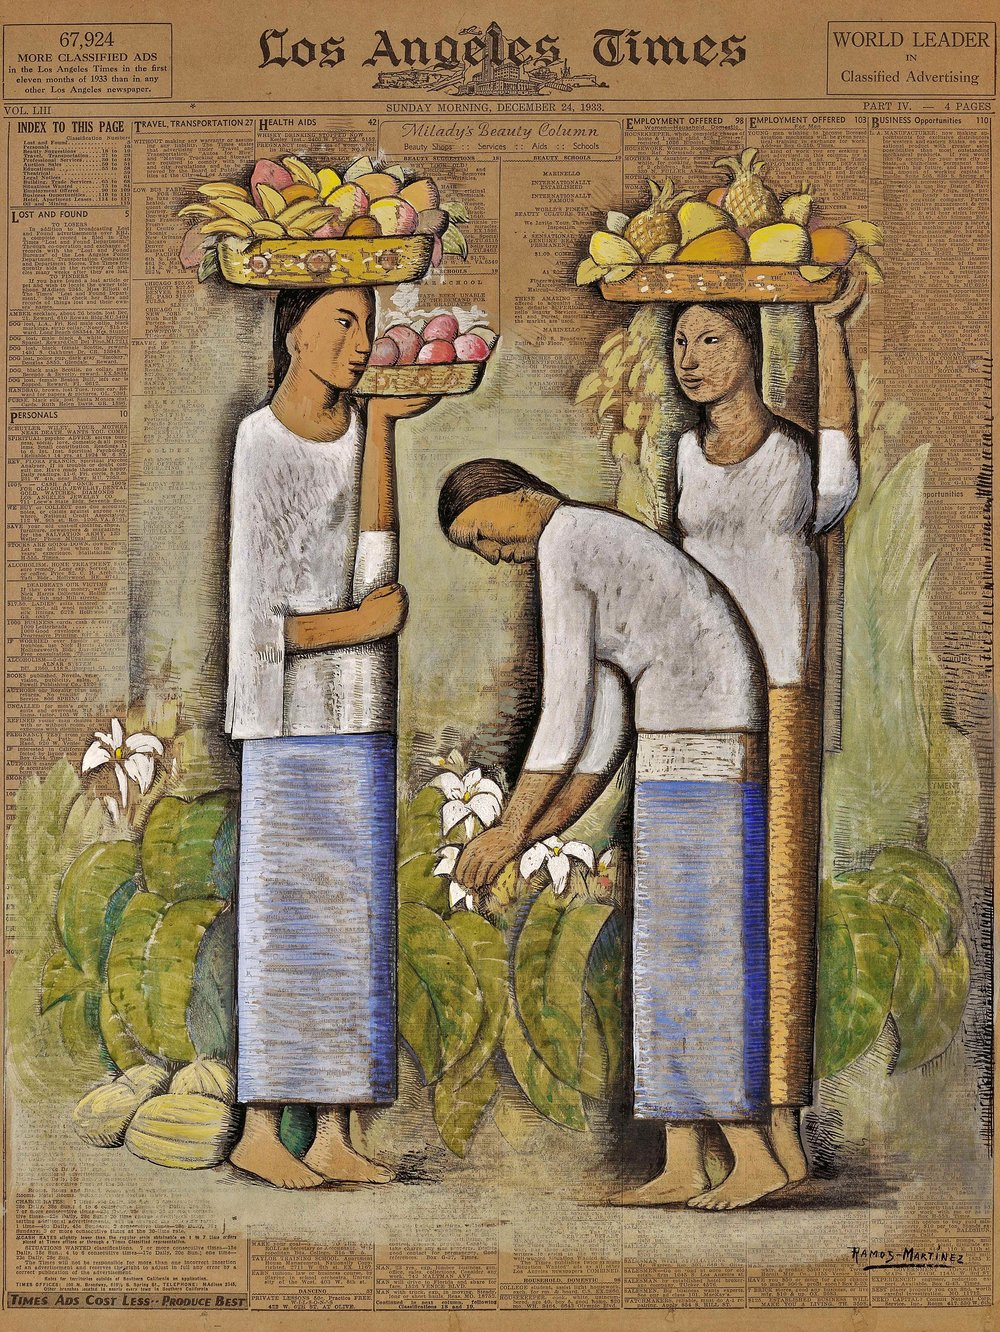 Mujeres con Frutas y Flores / Women with Fruit and Flowers  1933 tempera on newsprint / temple sobre papel periódico ( Los Angeles Times , December 24, 1933) 22.6 x 16.6 inches / 57.5 x 42.2 centímetros Private collection